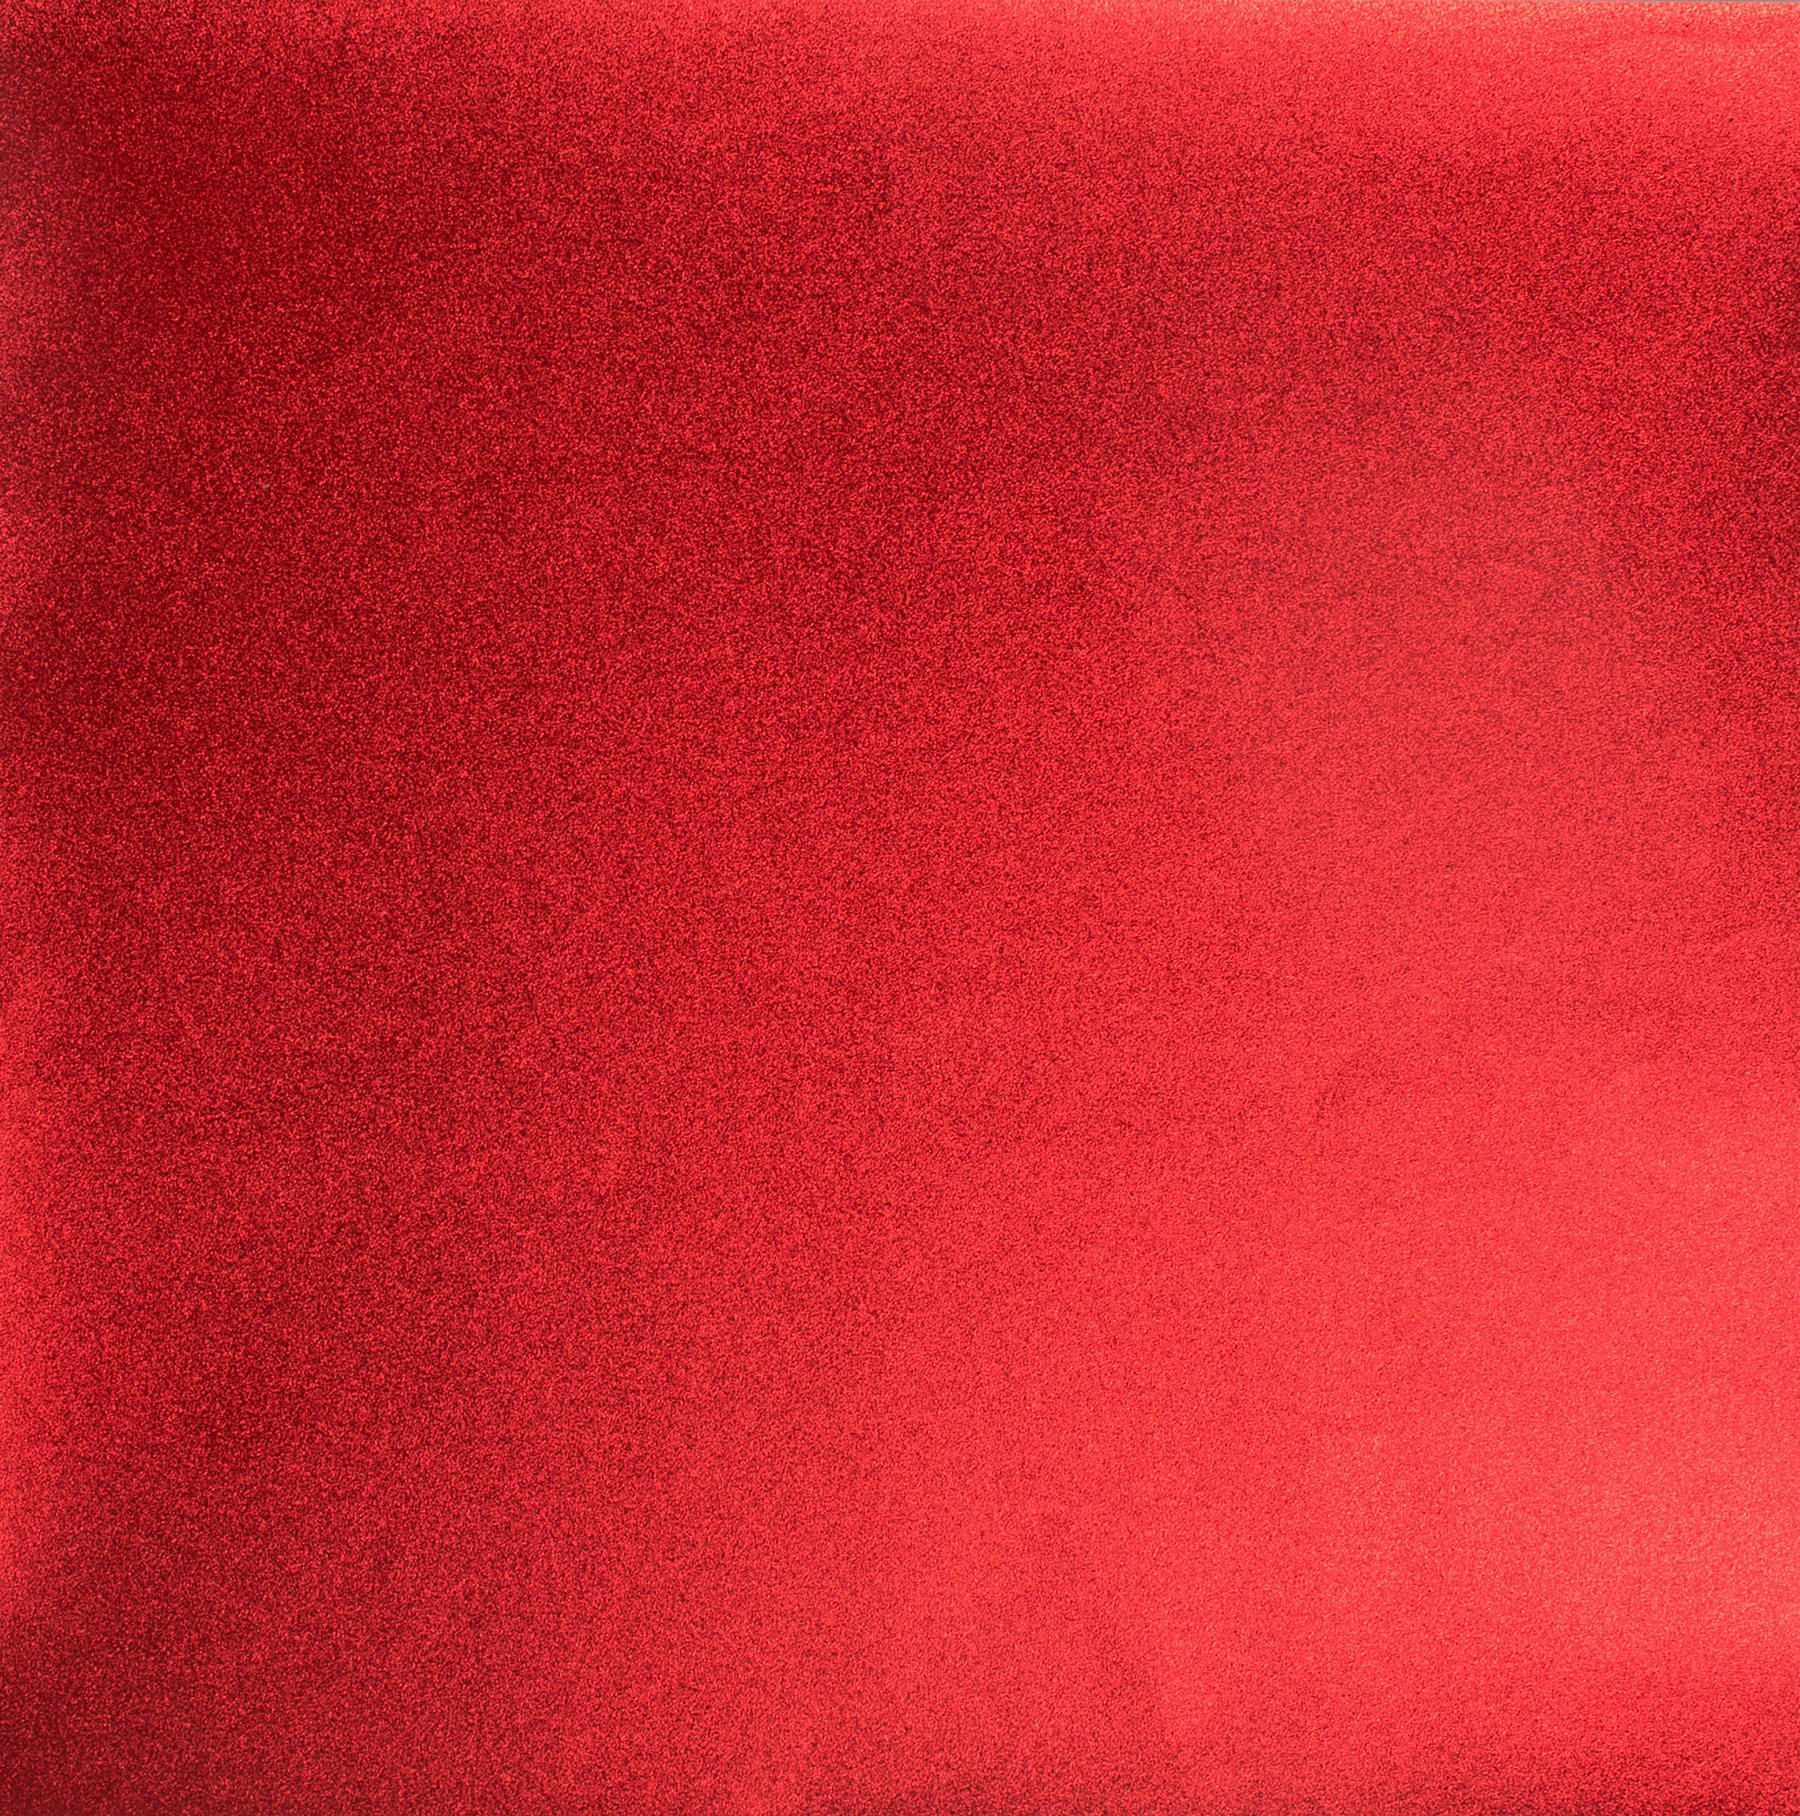 Red Textured Foil Paper By Recollections